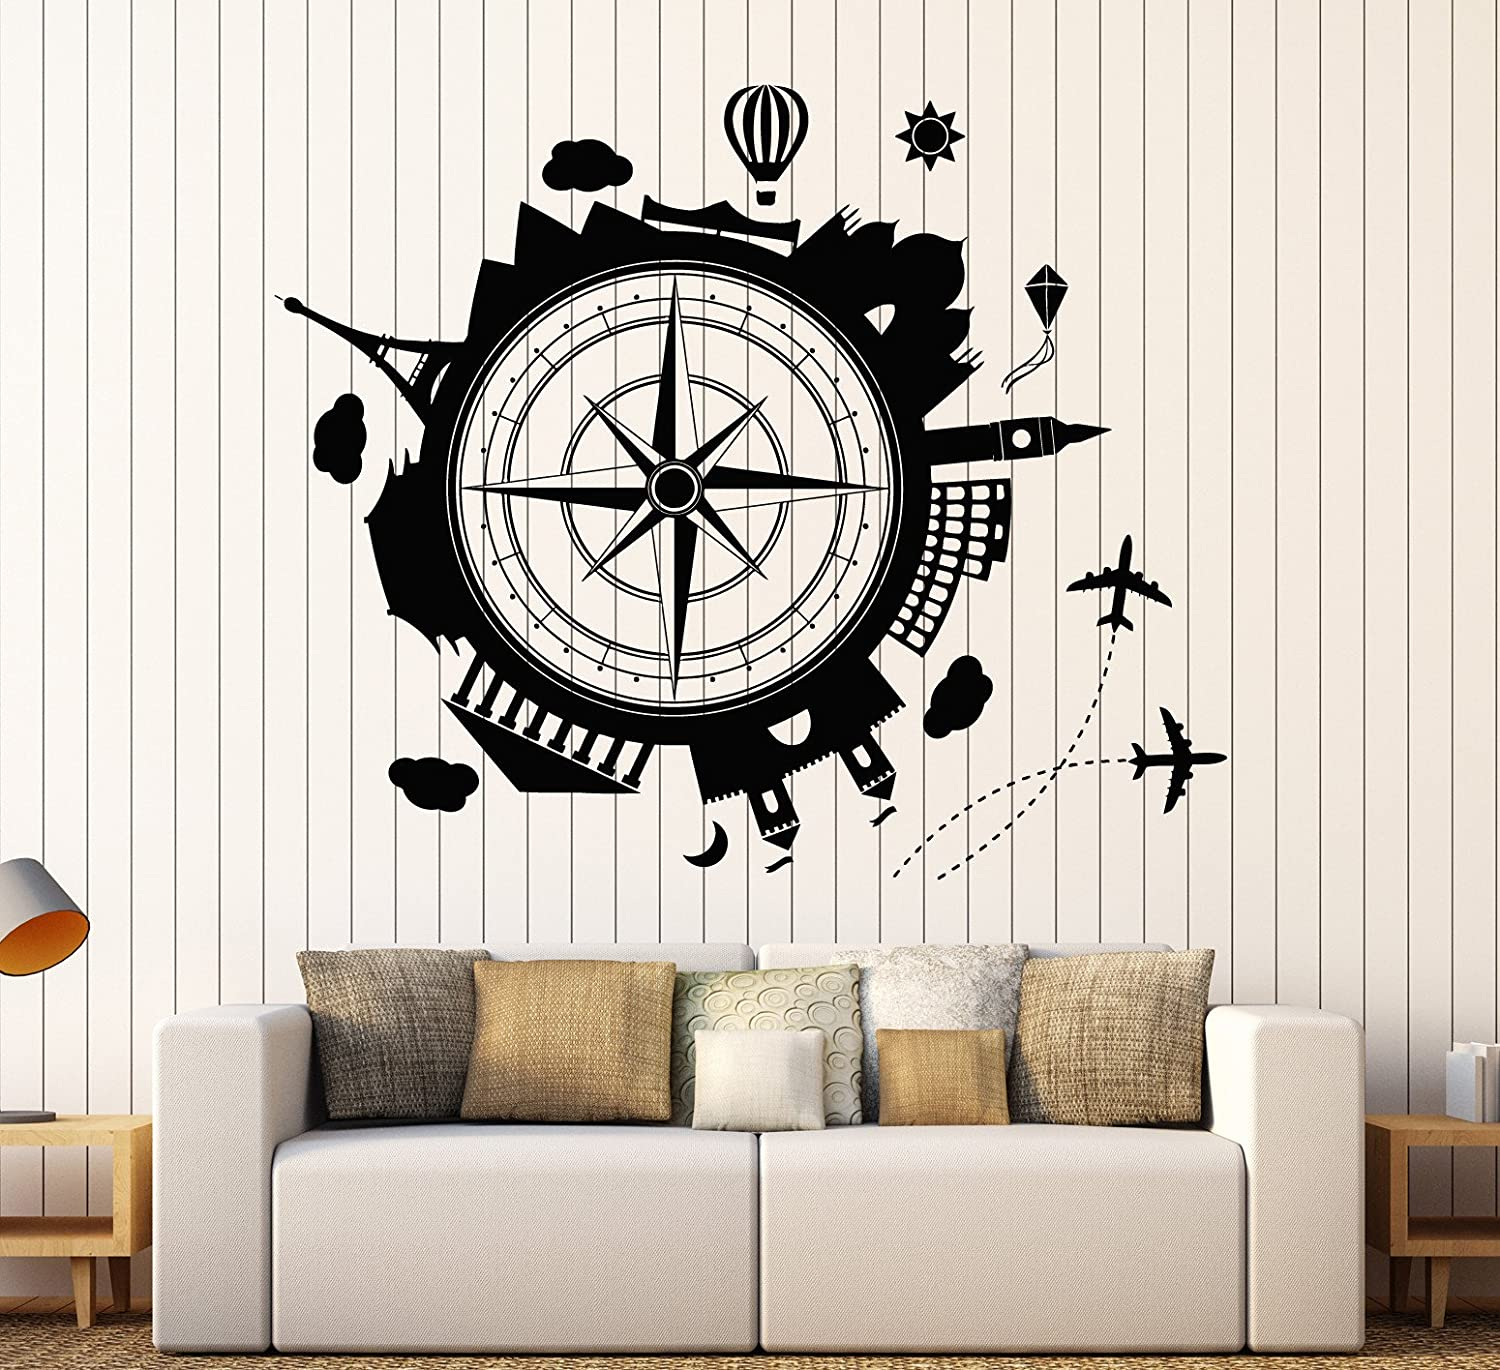 Amazon Com Vinyl Wall Decal Travel Agency Earth Wind Rose